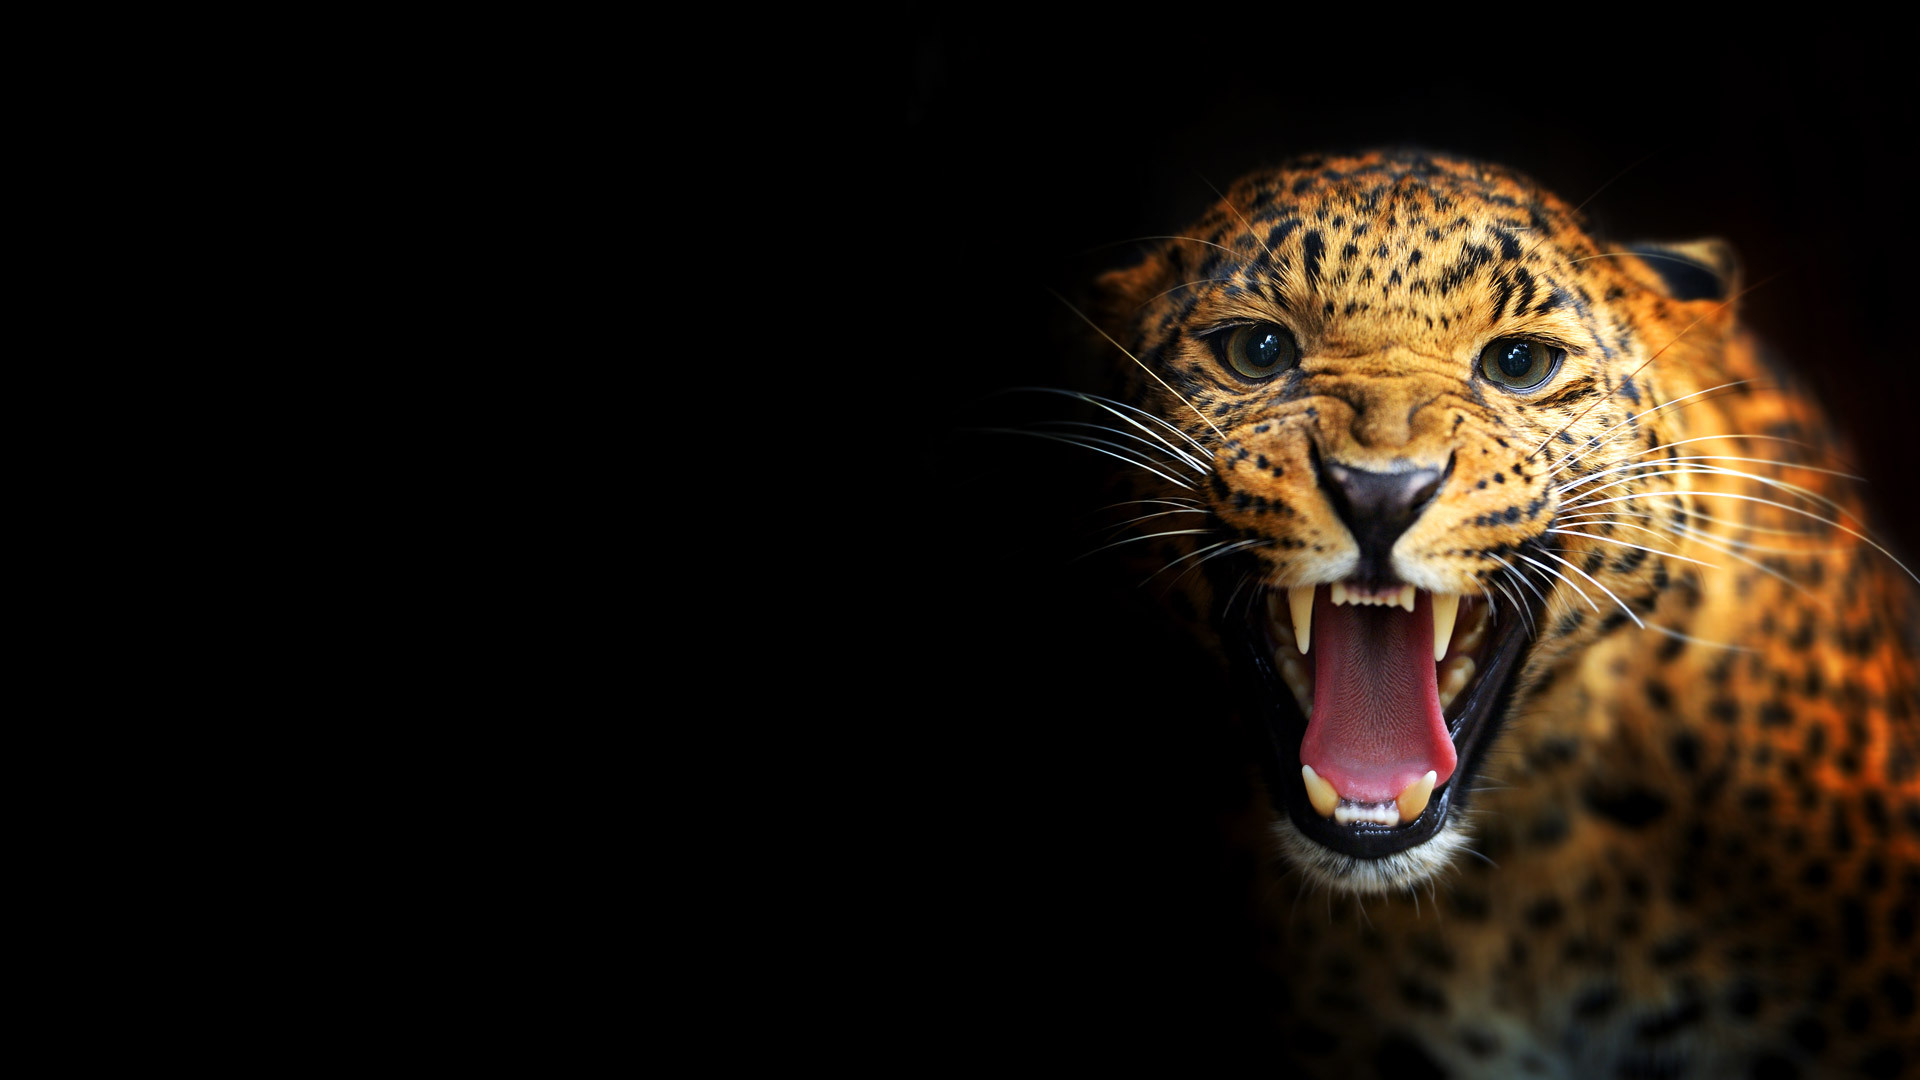 Leopard on a black background wallpapers and images 1920x1080